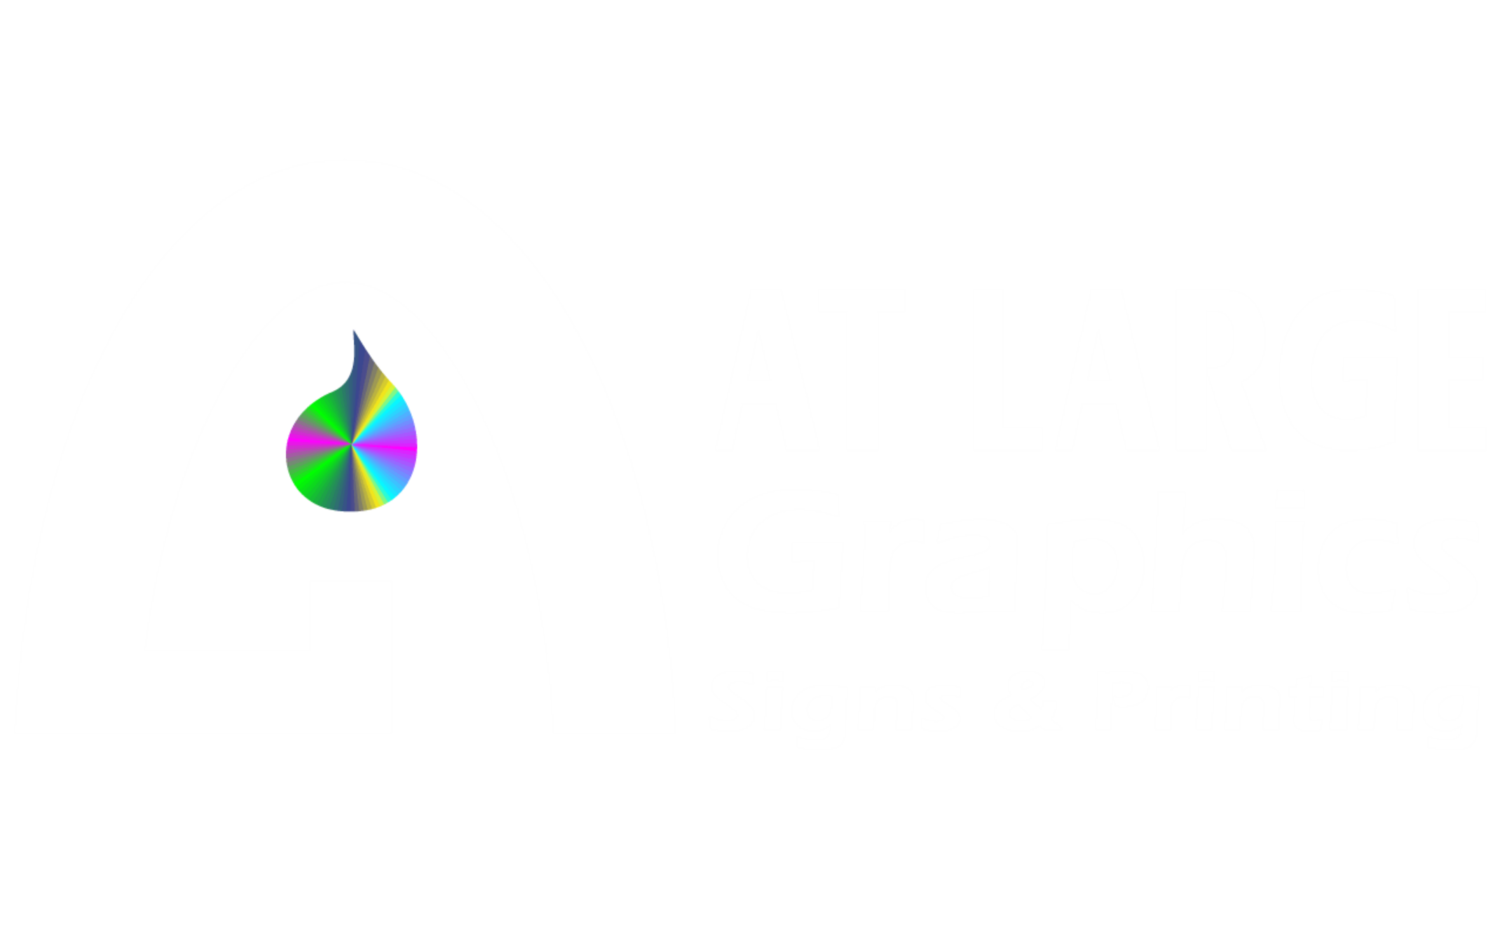 At Large Graphics